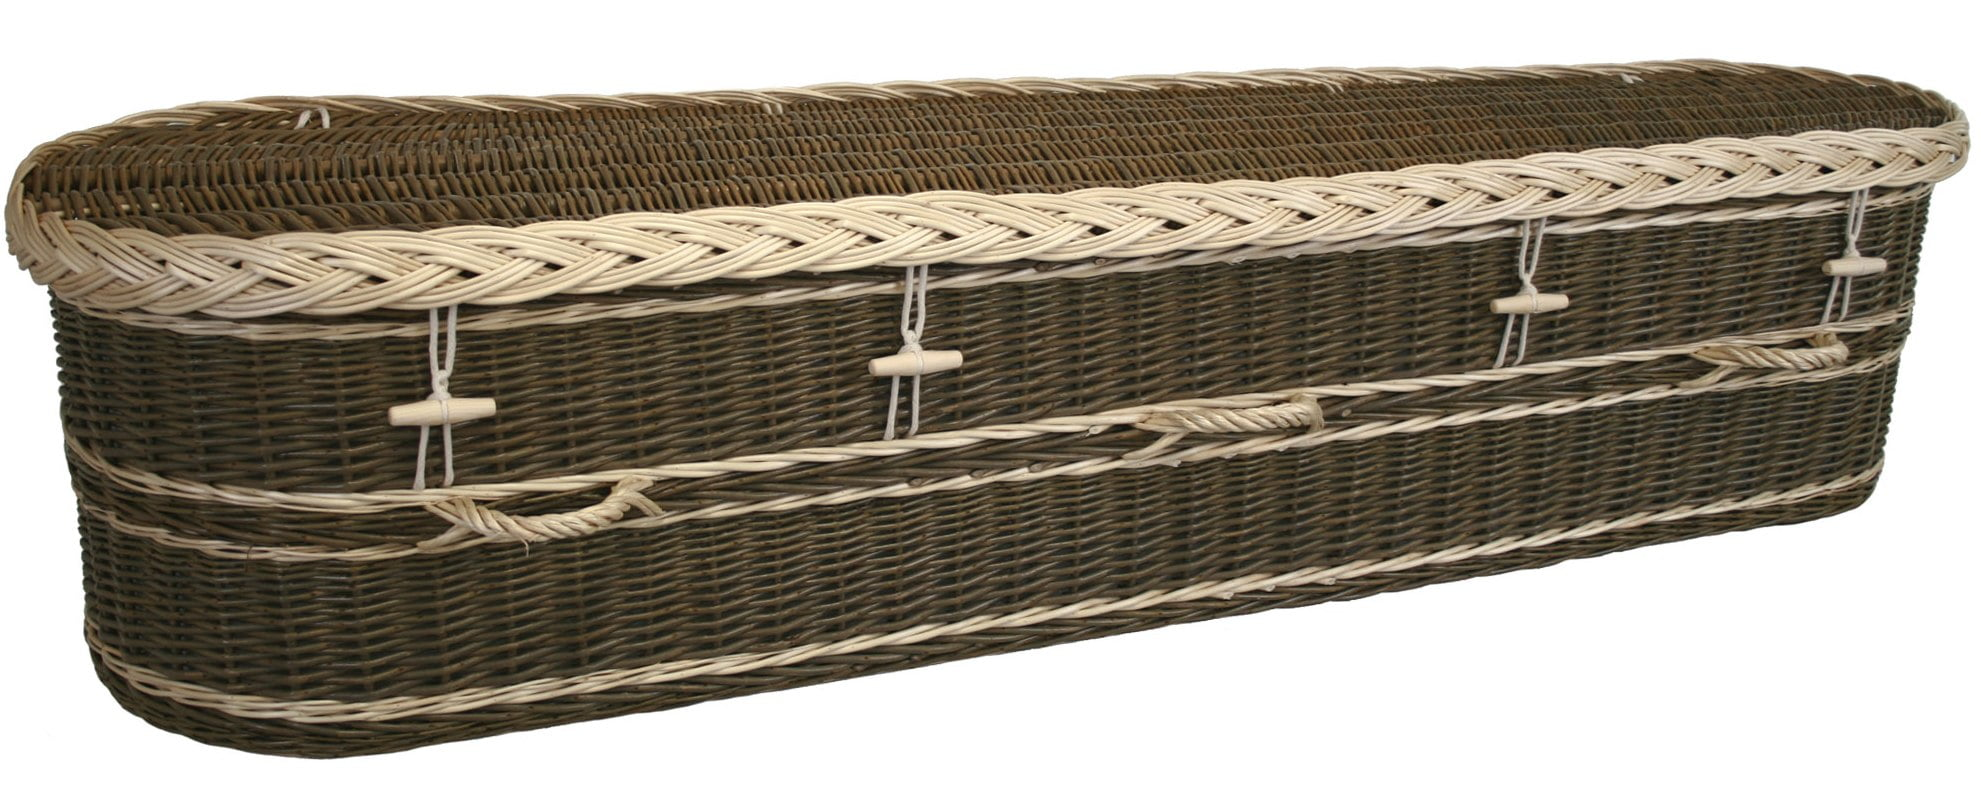 Biodegradable willow coffin